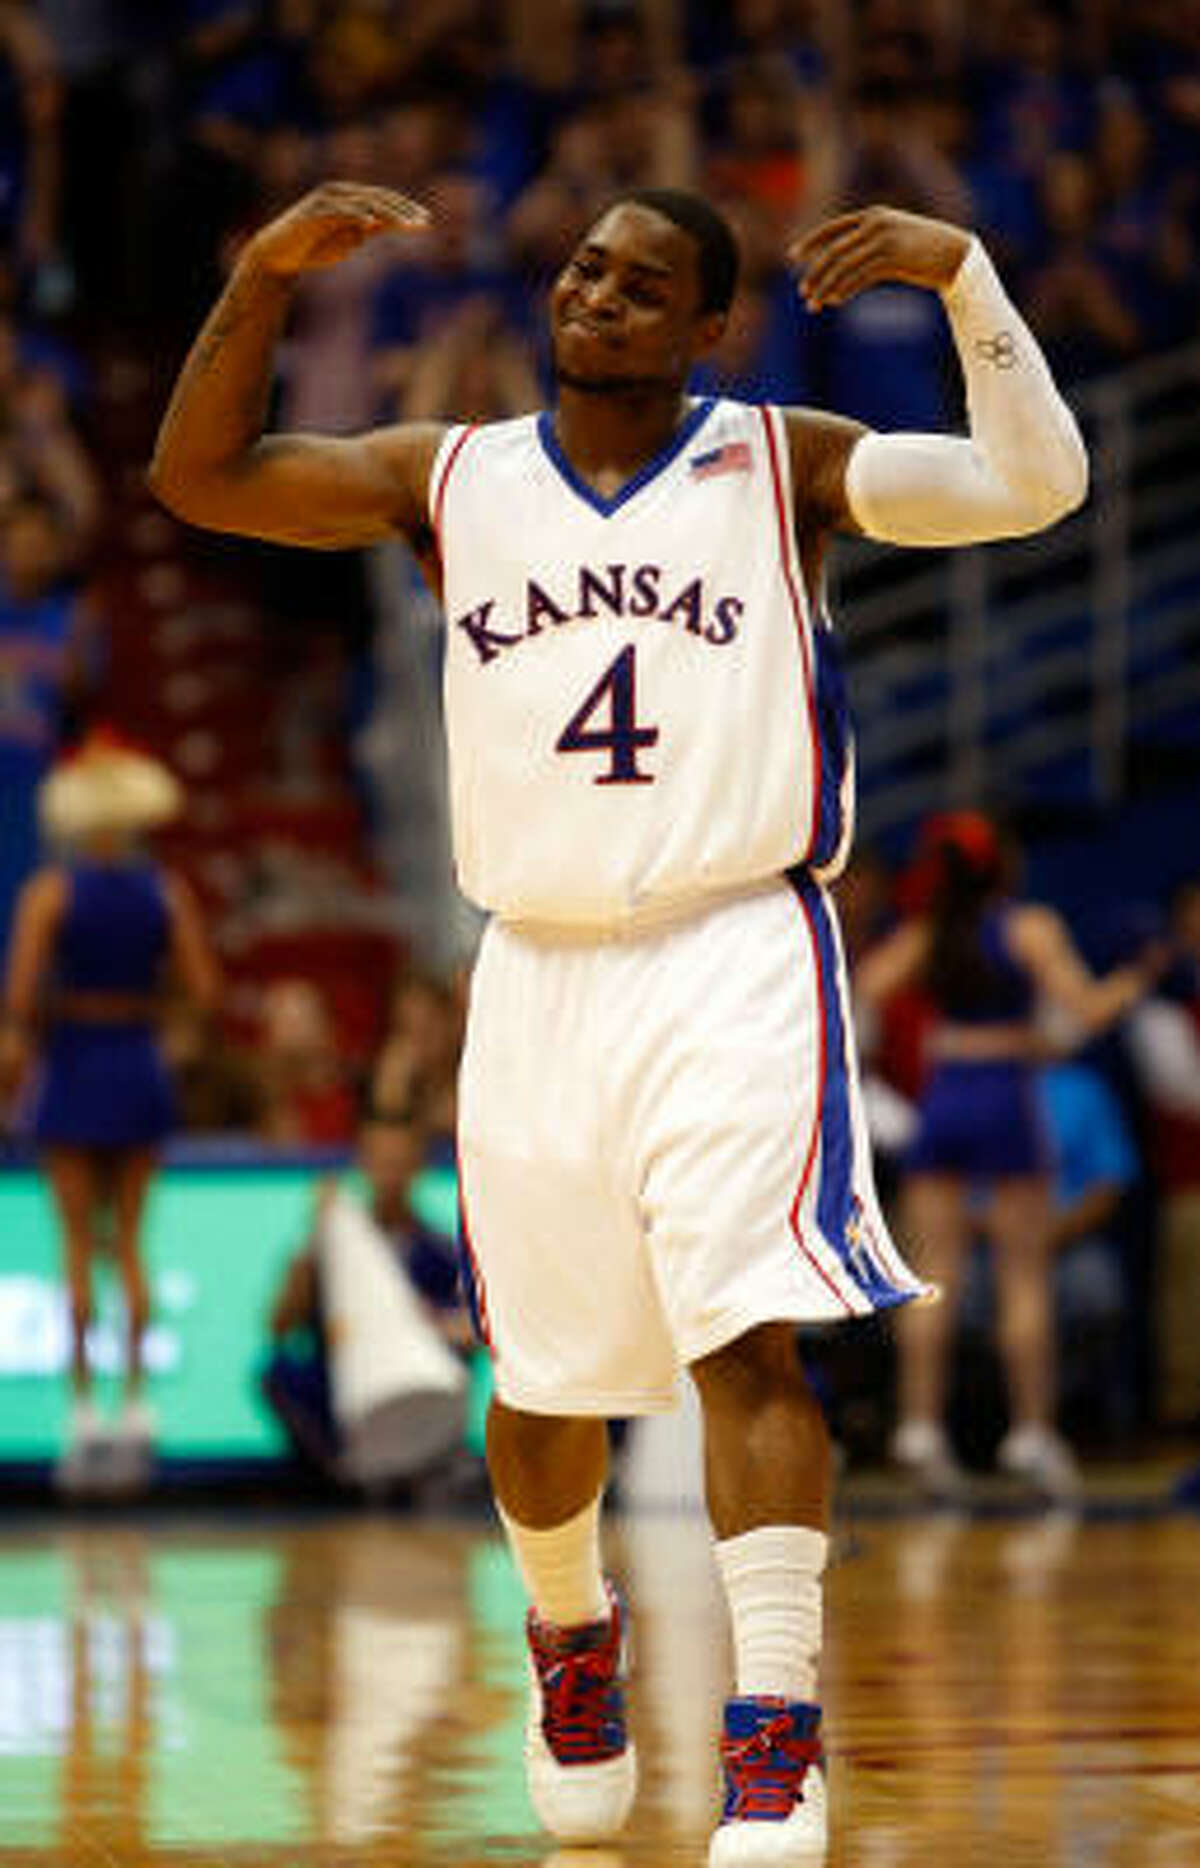 Kansas: (25-6): The defending national champion Jayhawks clinched their fifth straight Big 12 regular-season title and ninth in the league's 13-year history. Guard Sherron Collins (photo), a first-team All-Big 12 pick, is averaging 21.6 points in the last six games. Center Cole Aldrich is averaging 14.8 points and 10.5 rebounds.